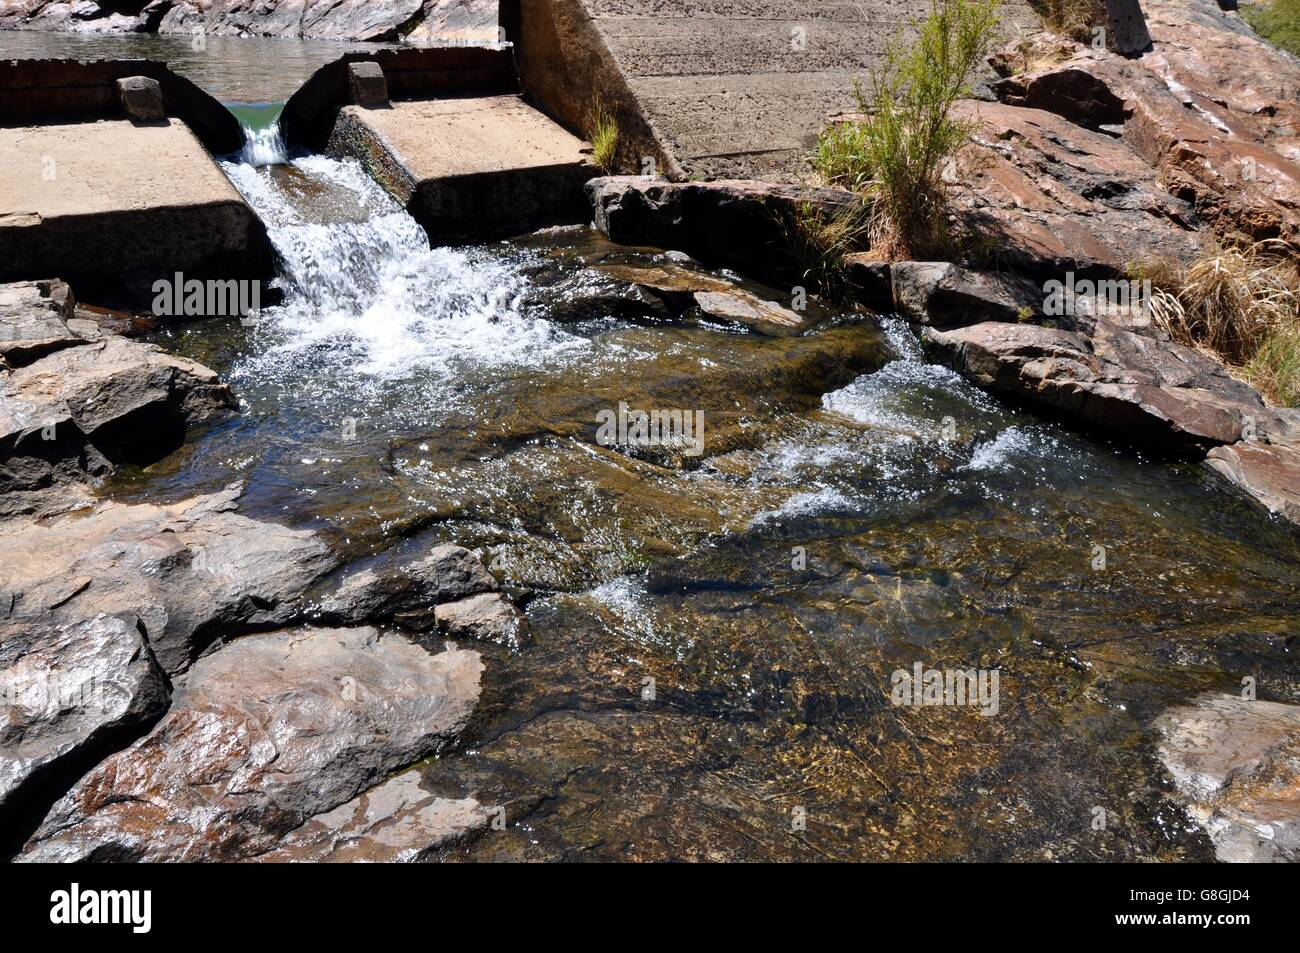 Spillway at the Serpentine Falls flowing into the granite rock pools in Serpentine, Western Australia. - Stock Image